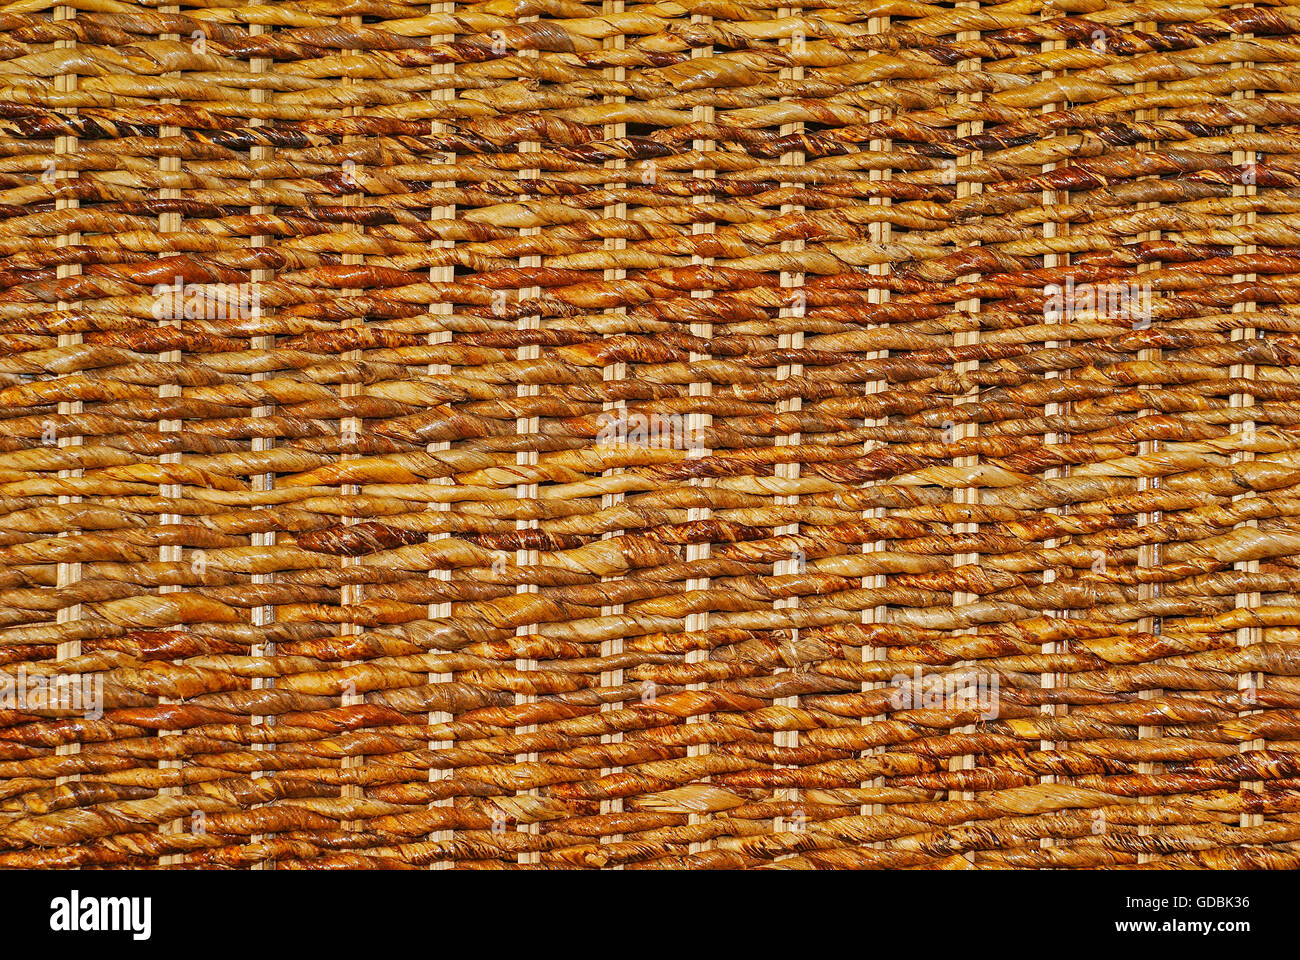 Braid and weave immagini & braid and weave fotos stock alamy